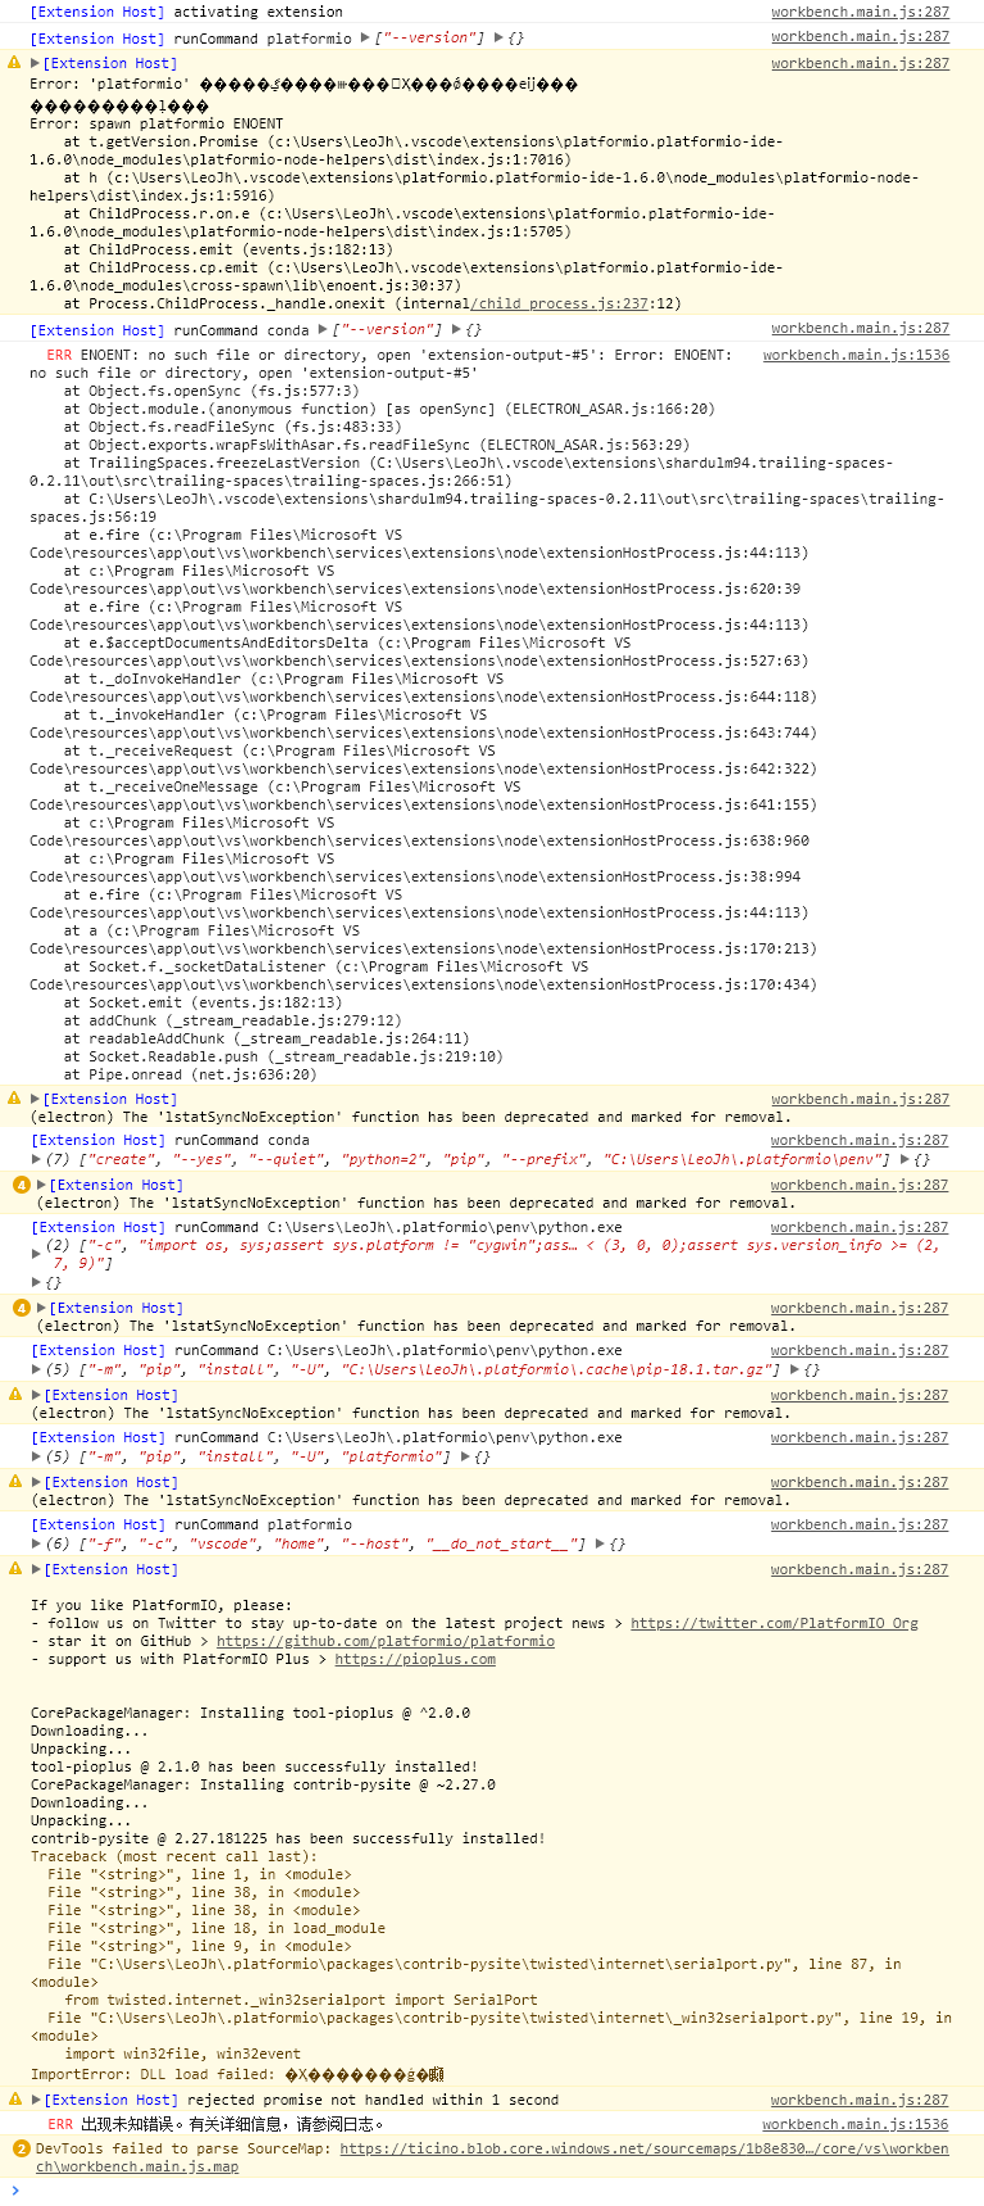 ImportError: DLL load failed: The specified module could not